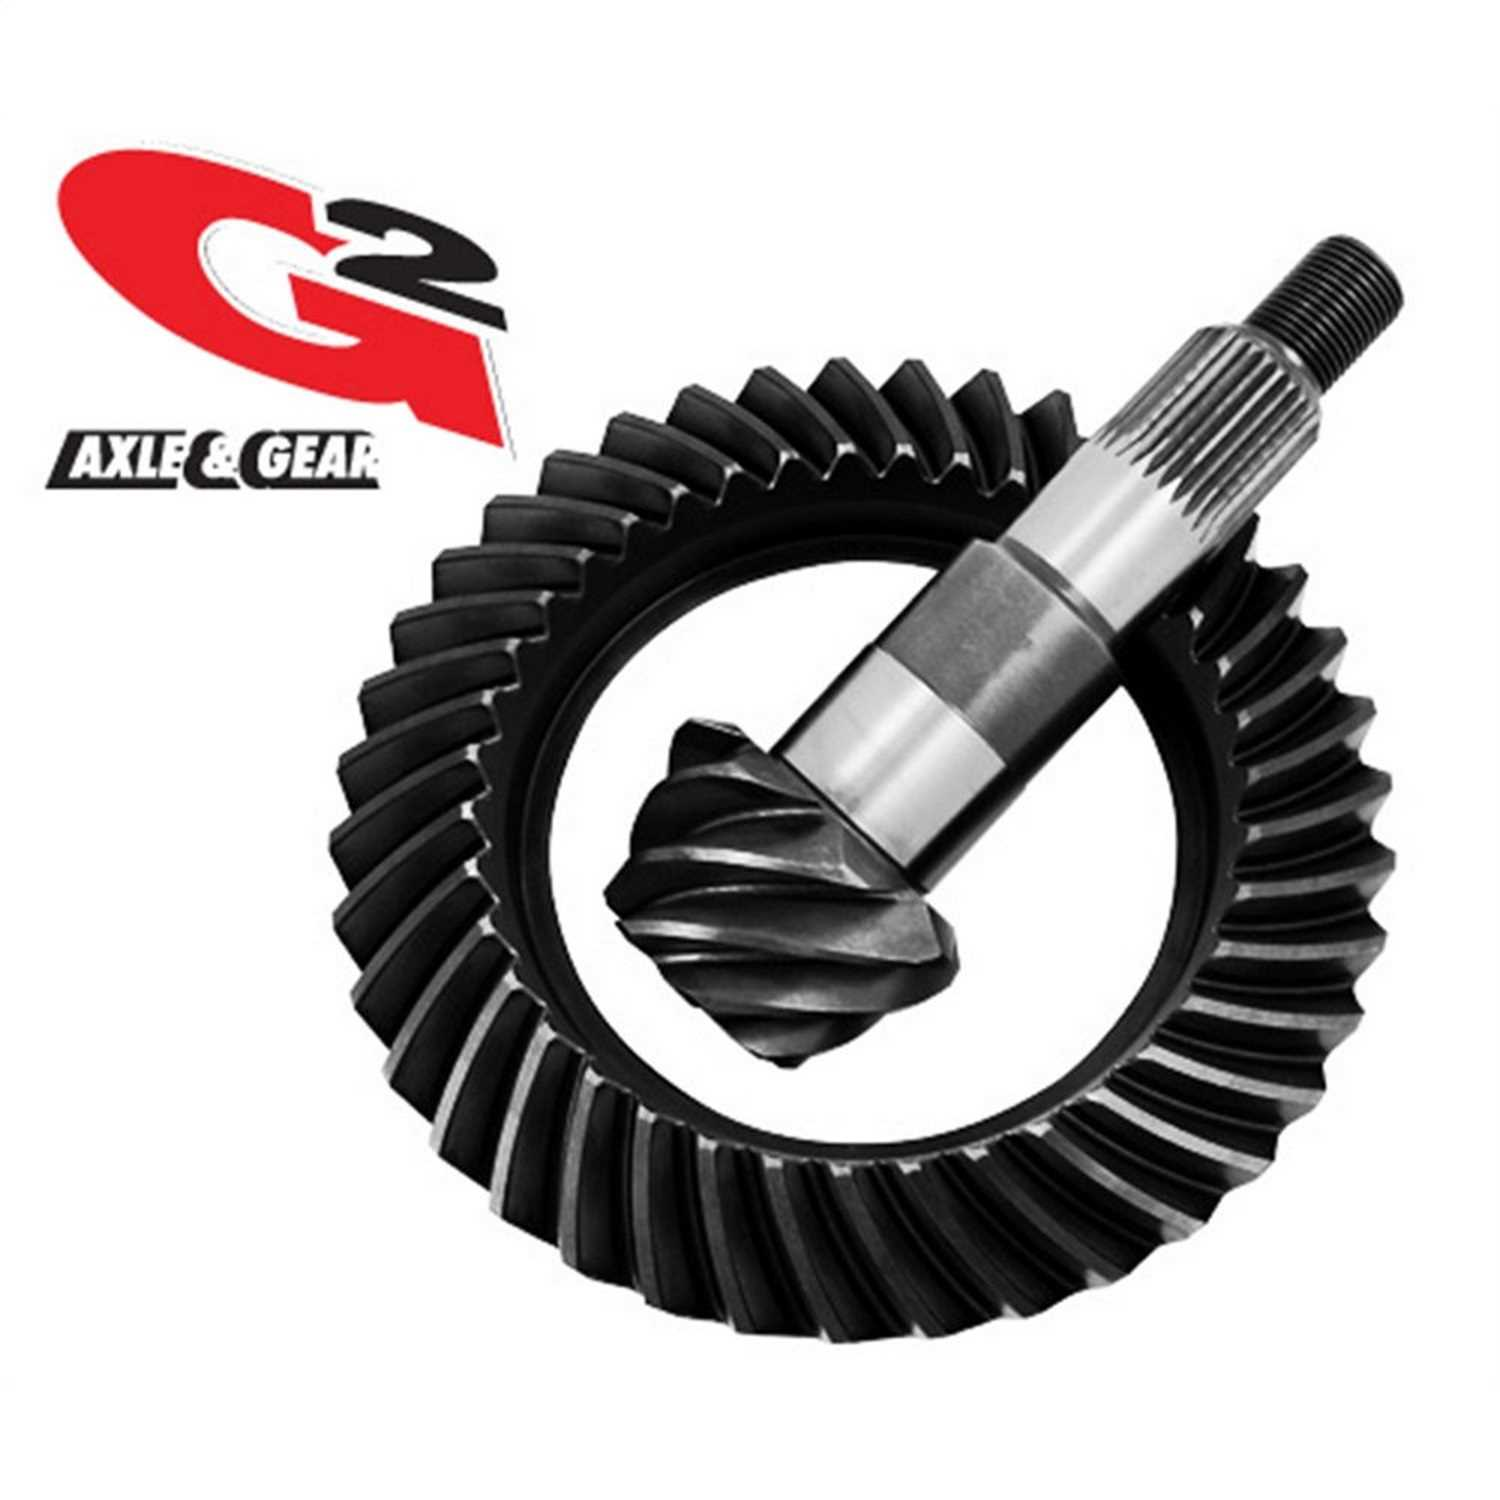 2-2013-355 G2 Axle and Gear Ring and Pinion Set